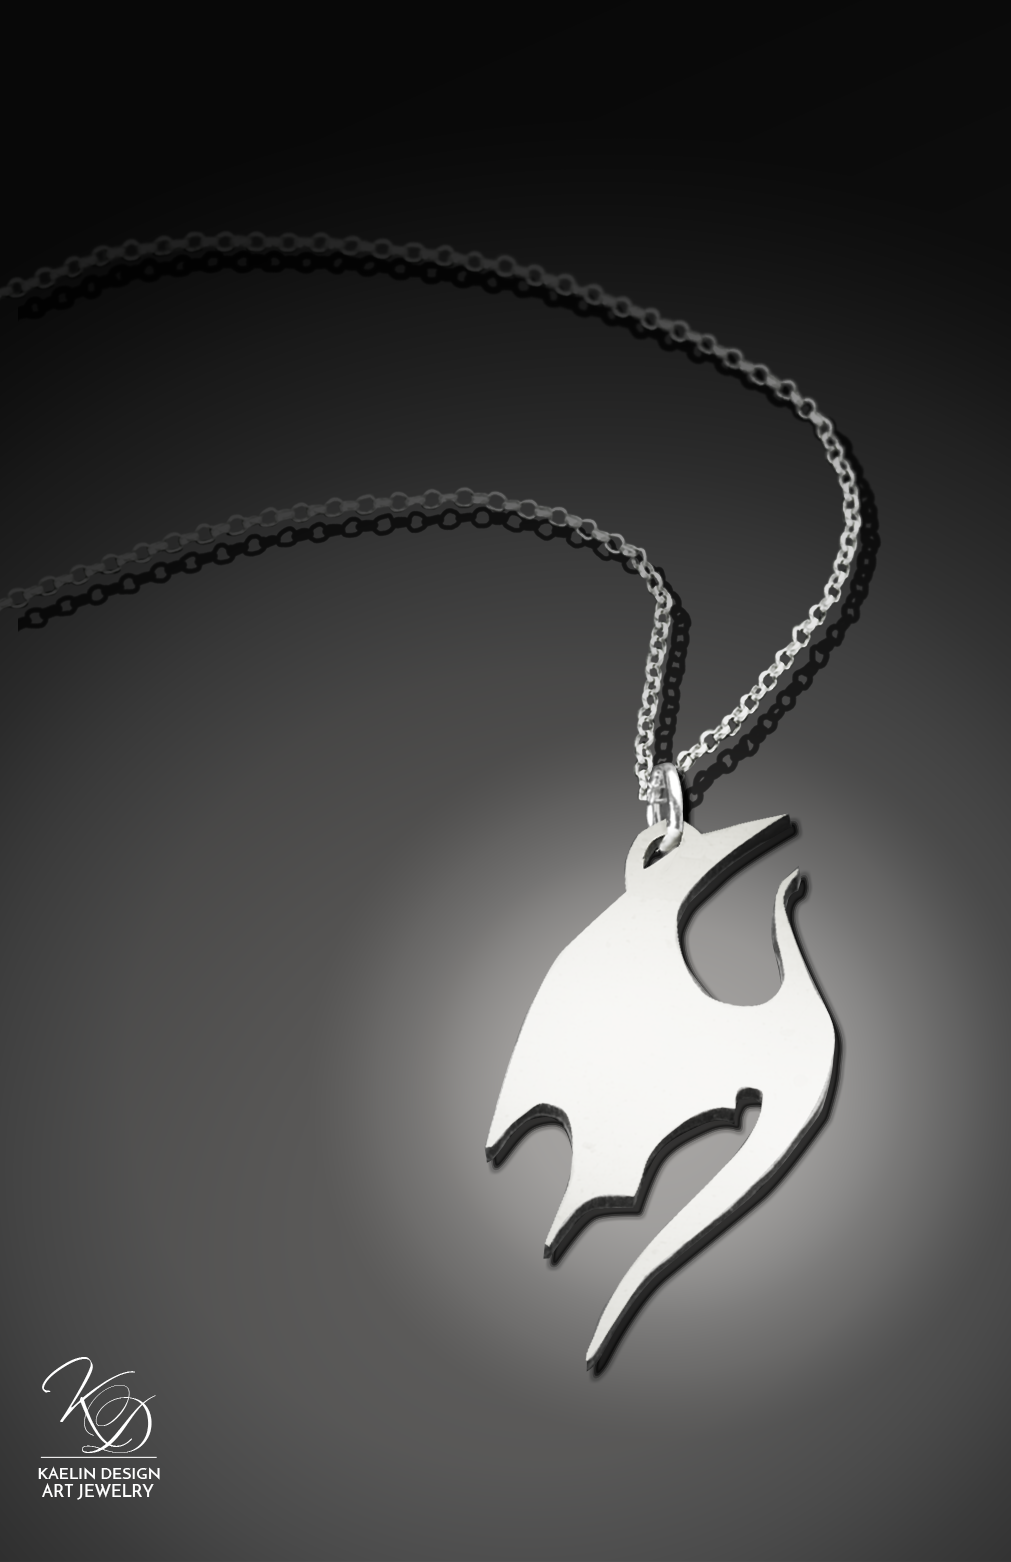 Silver Dragon necklace pendant by Kaelin Design Art Jewelry